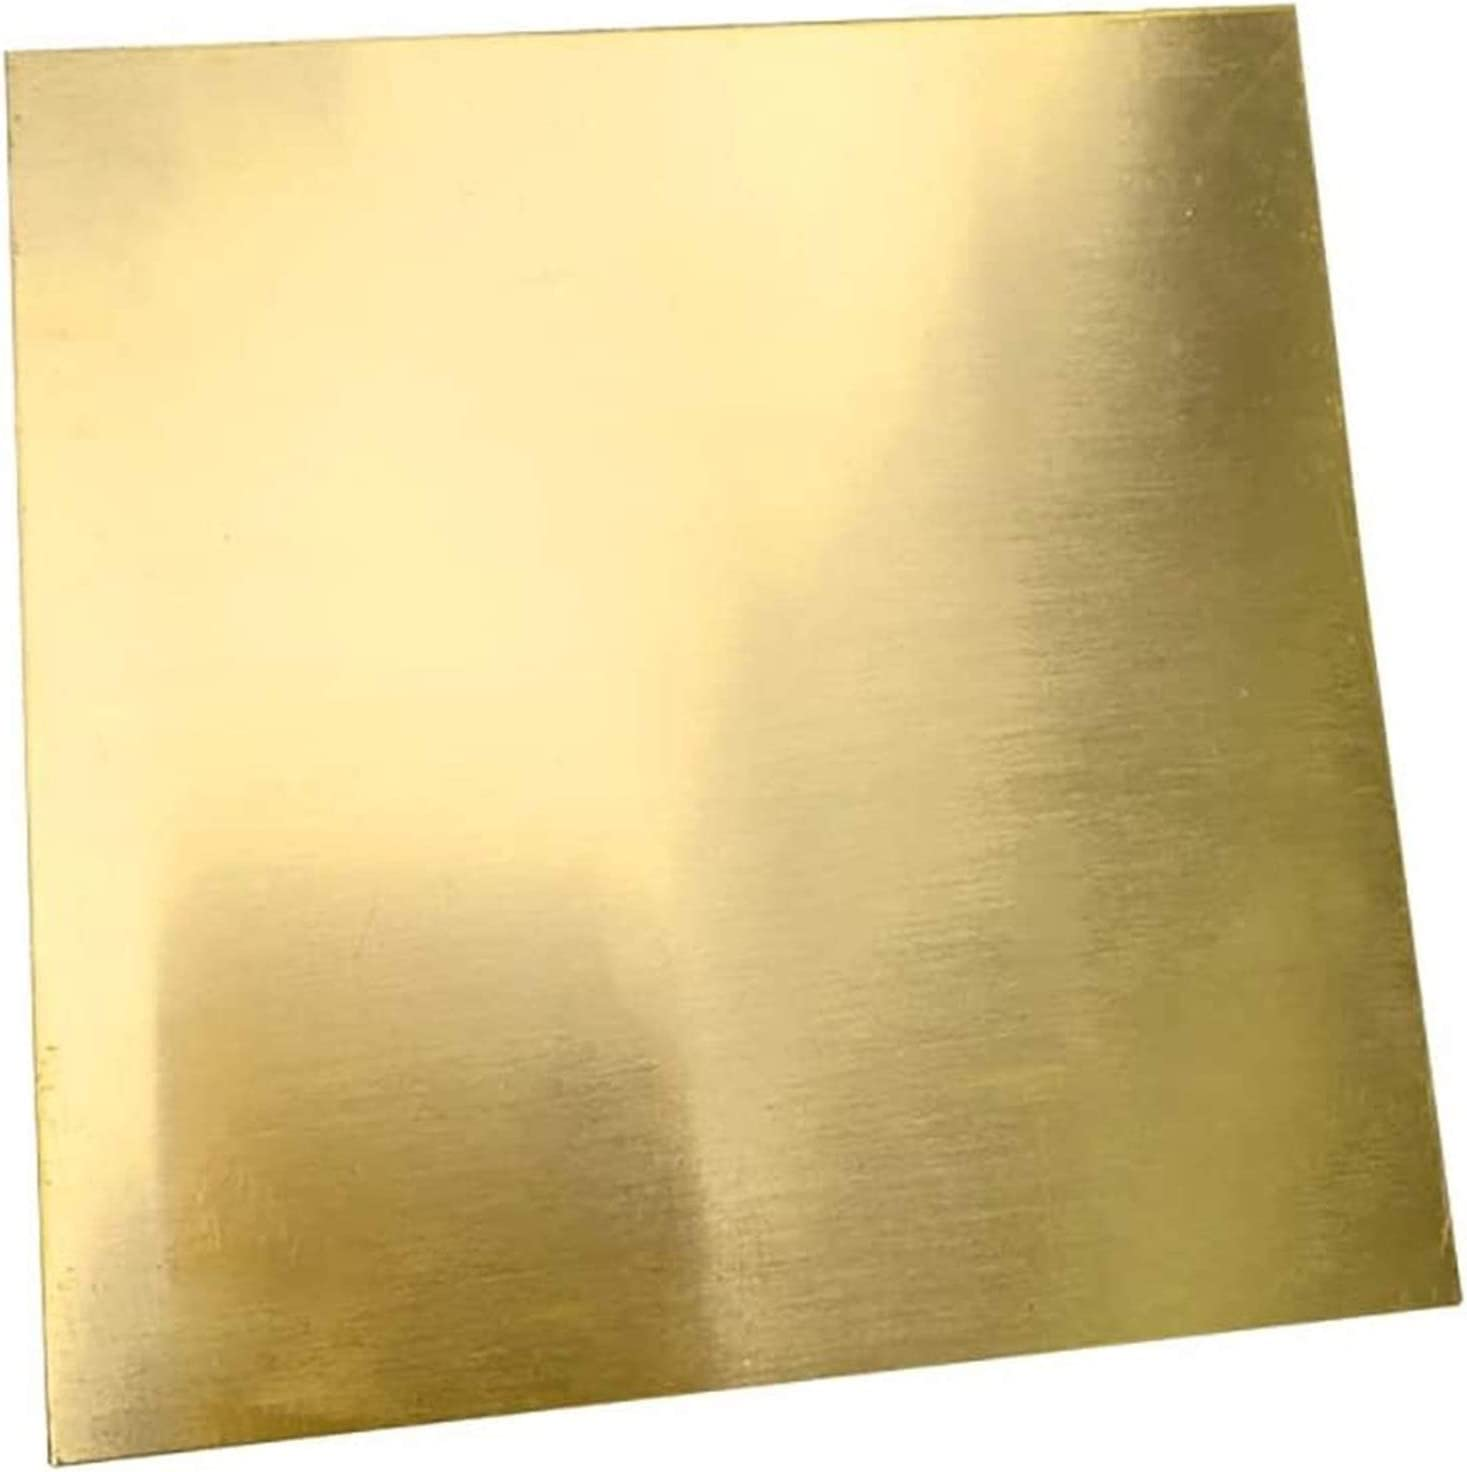 Wzqwzj Brass Sheet Fashion for Metalworking Import Thickness Craft DIY Various